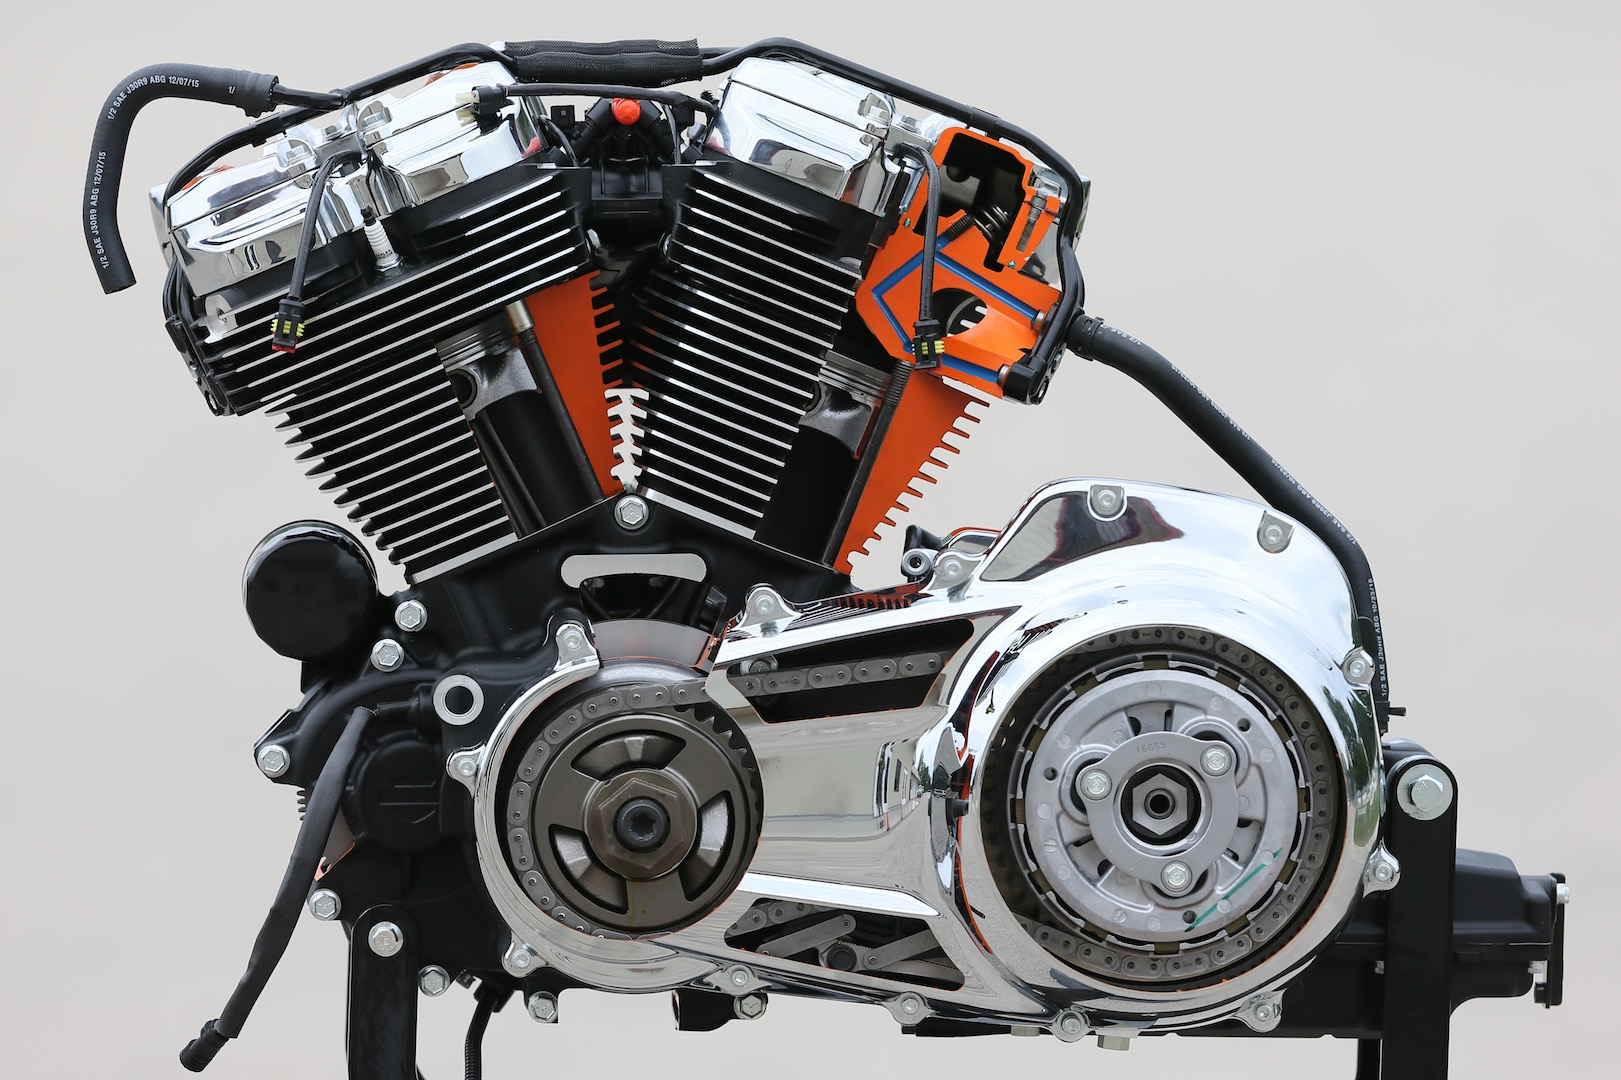 2017 harley davidson milwaukee eight engines 11 fast facts Harley-Davidson Motorcycle Parts Diagram harley twin cooled engine problems Harley Davidson Starter